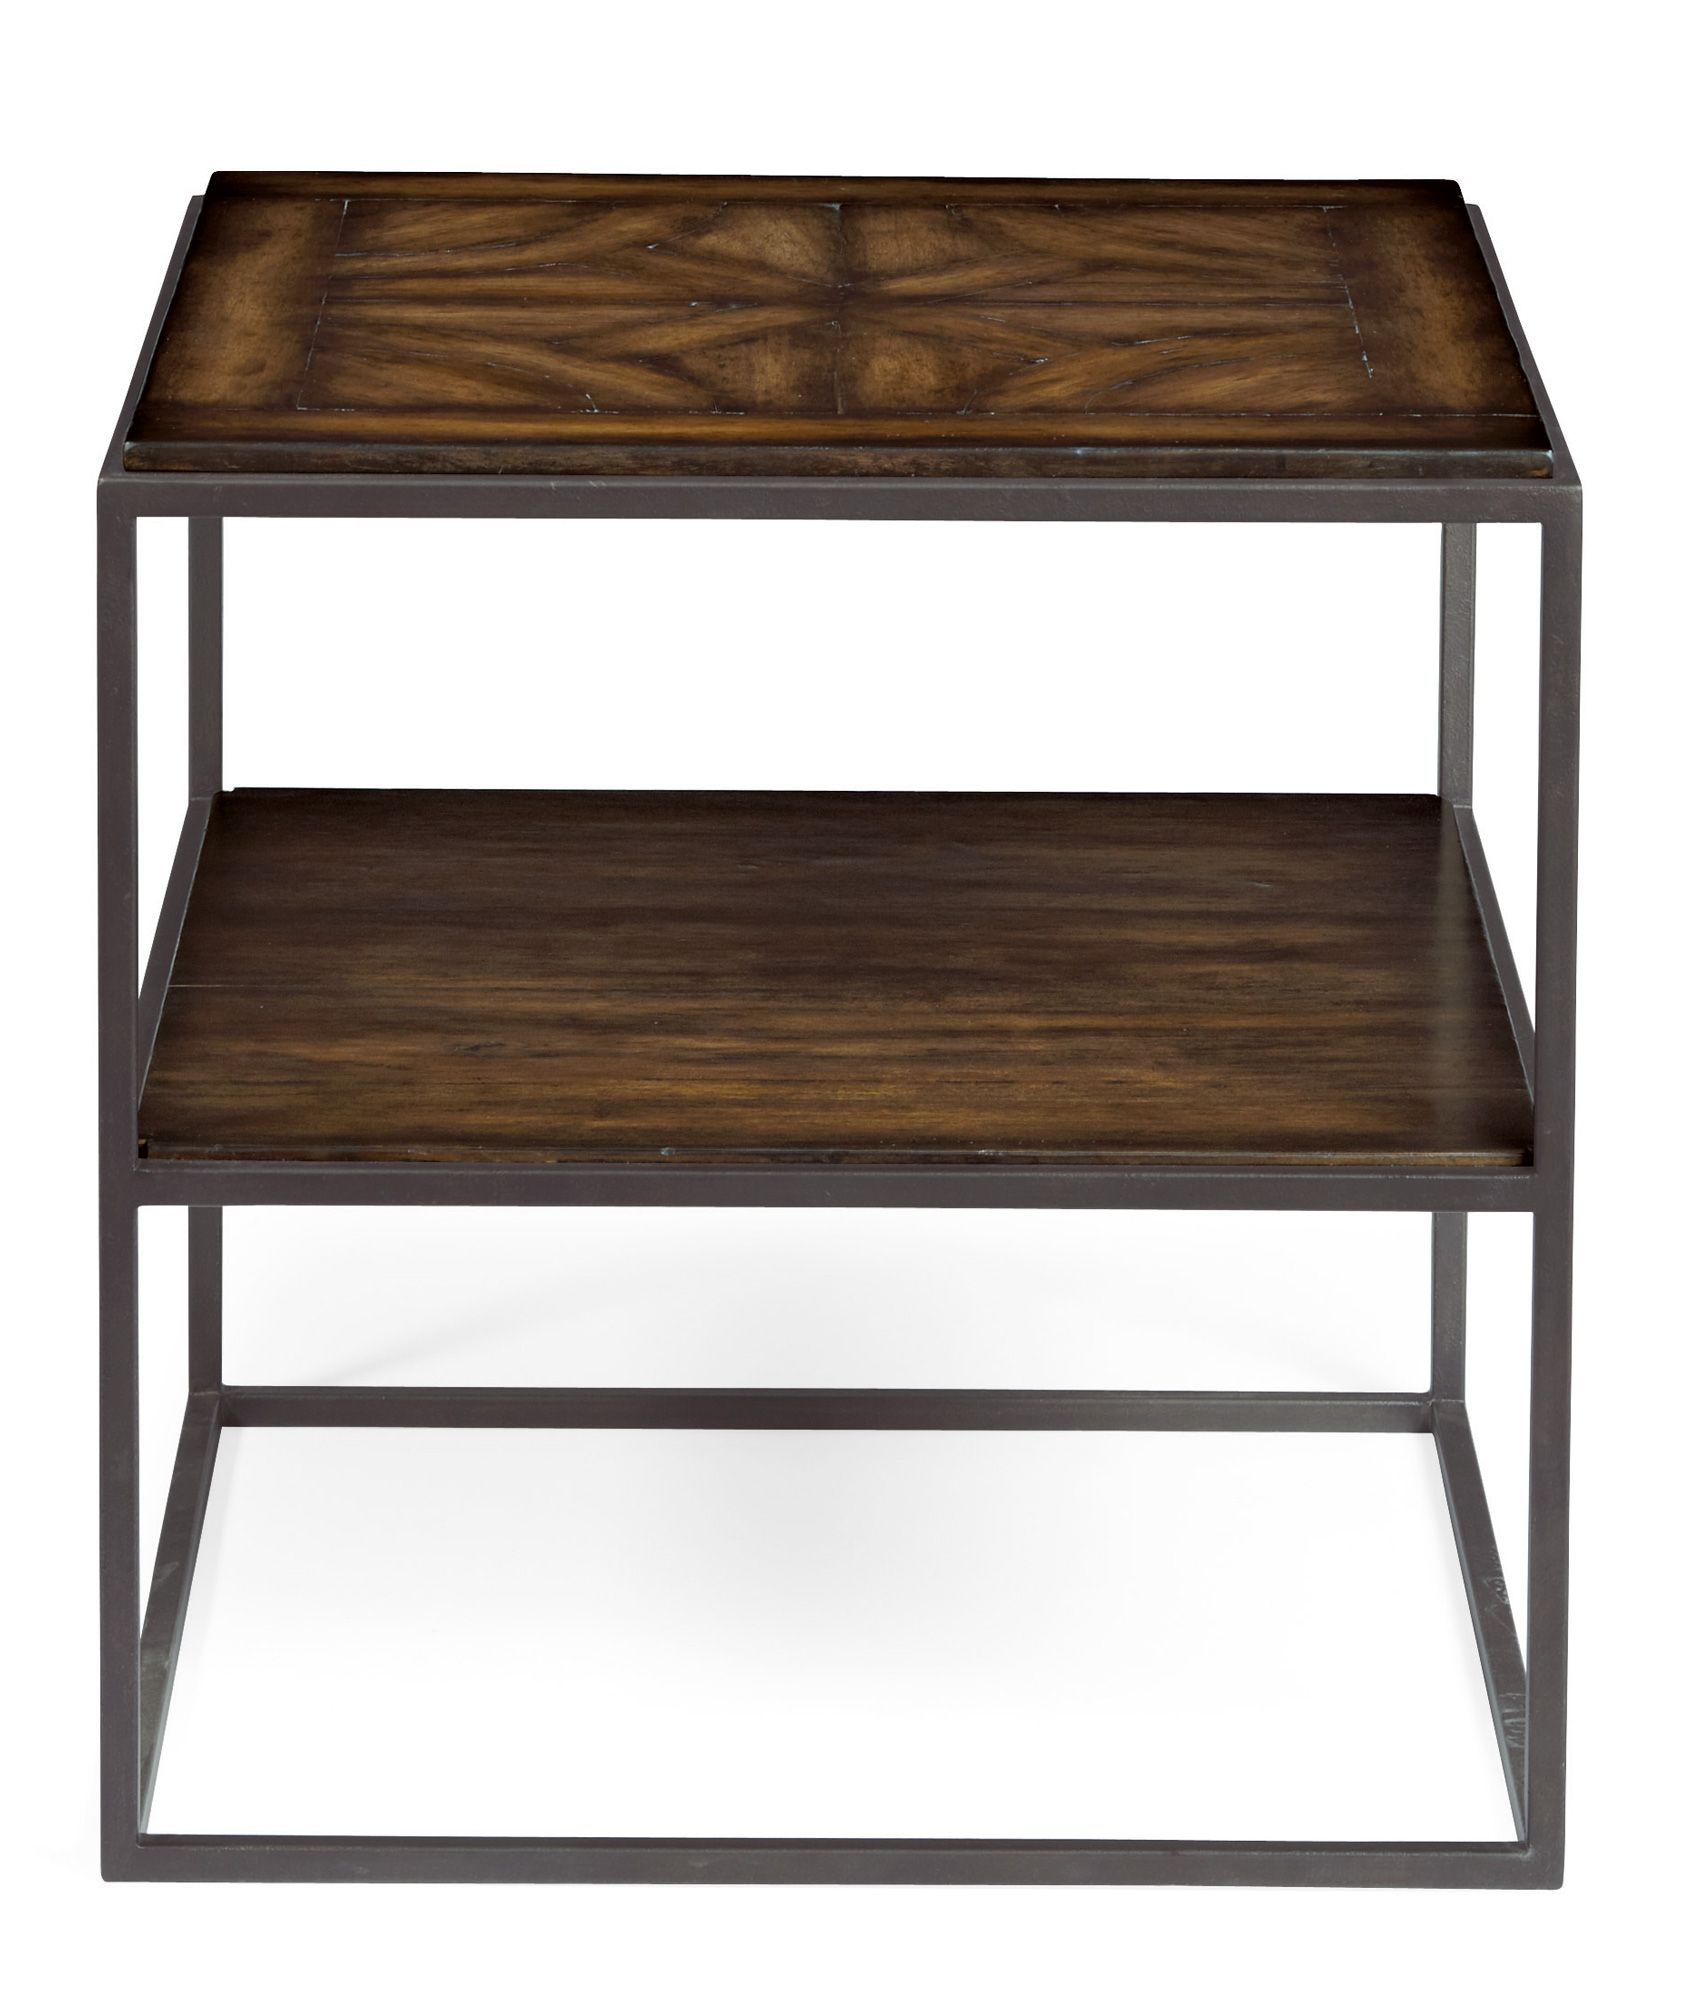 Stupendous Bernhardt Vestige Square End Table In Allspice 345 111 Theyellowbook Wood Chair Design Ideas Theyellowbookinfo